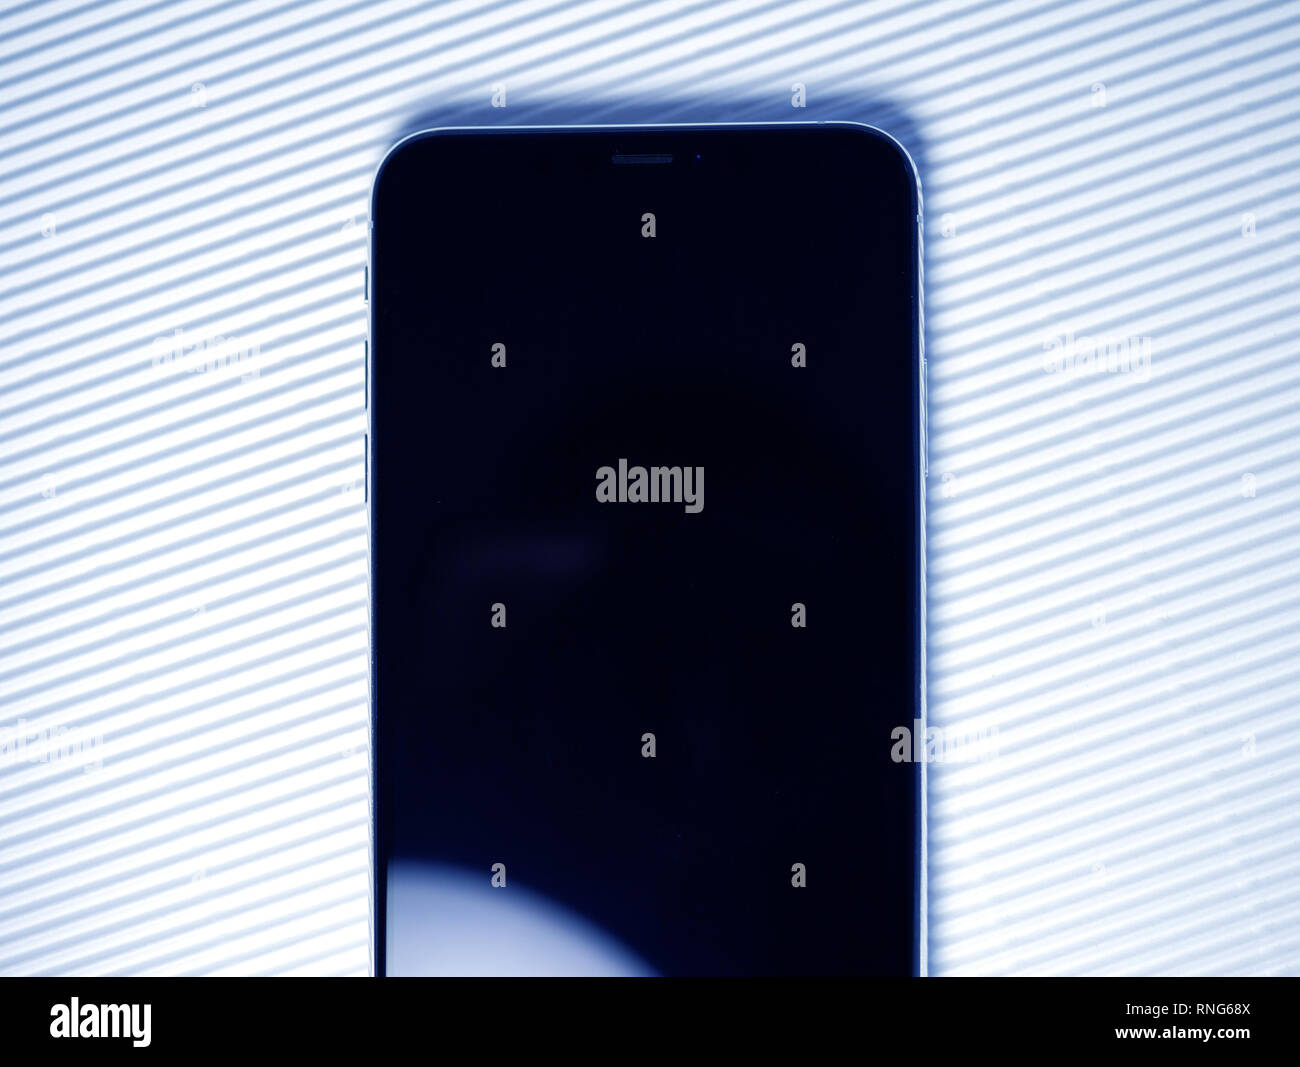 PARIS, FRANCE - SEP 27, 2018: Part detail of new iPhone Xs Max smartphone model by Apple Computers close up with black display screen  - Stock Image